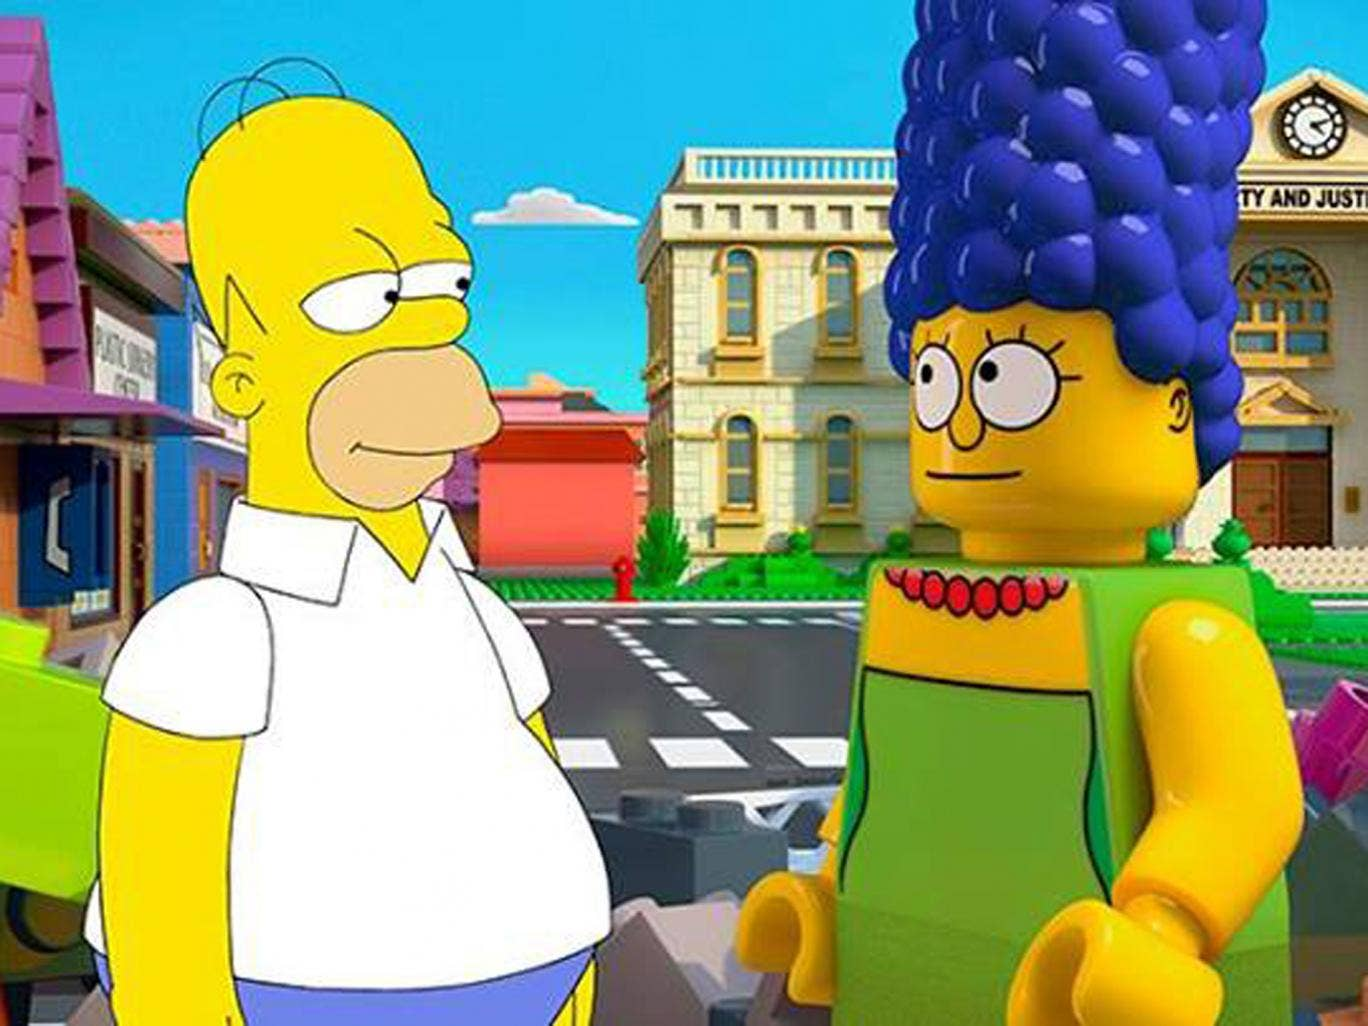 Homer meets Lego Marge in the 25th anniversary episode of The Simpsons, set to air on 4 May